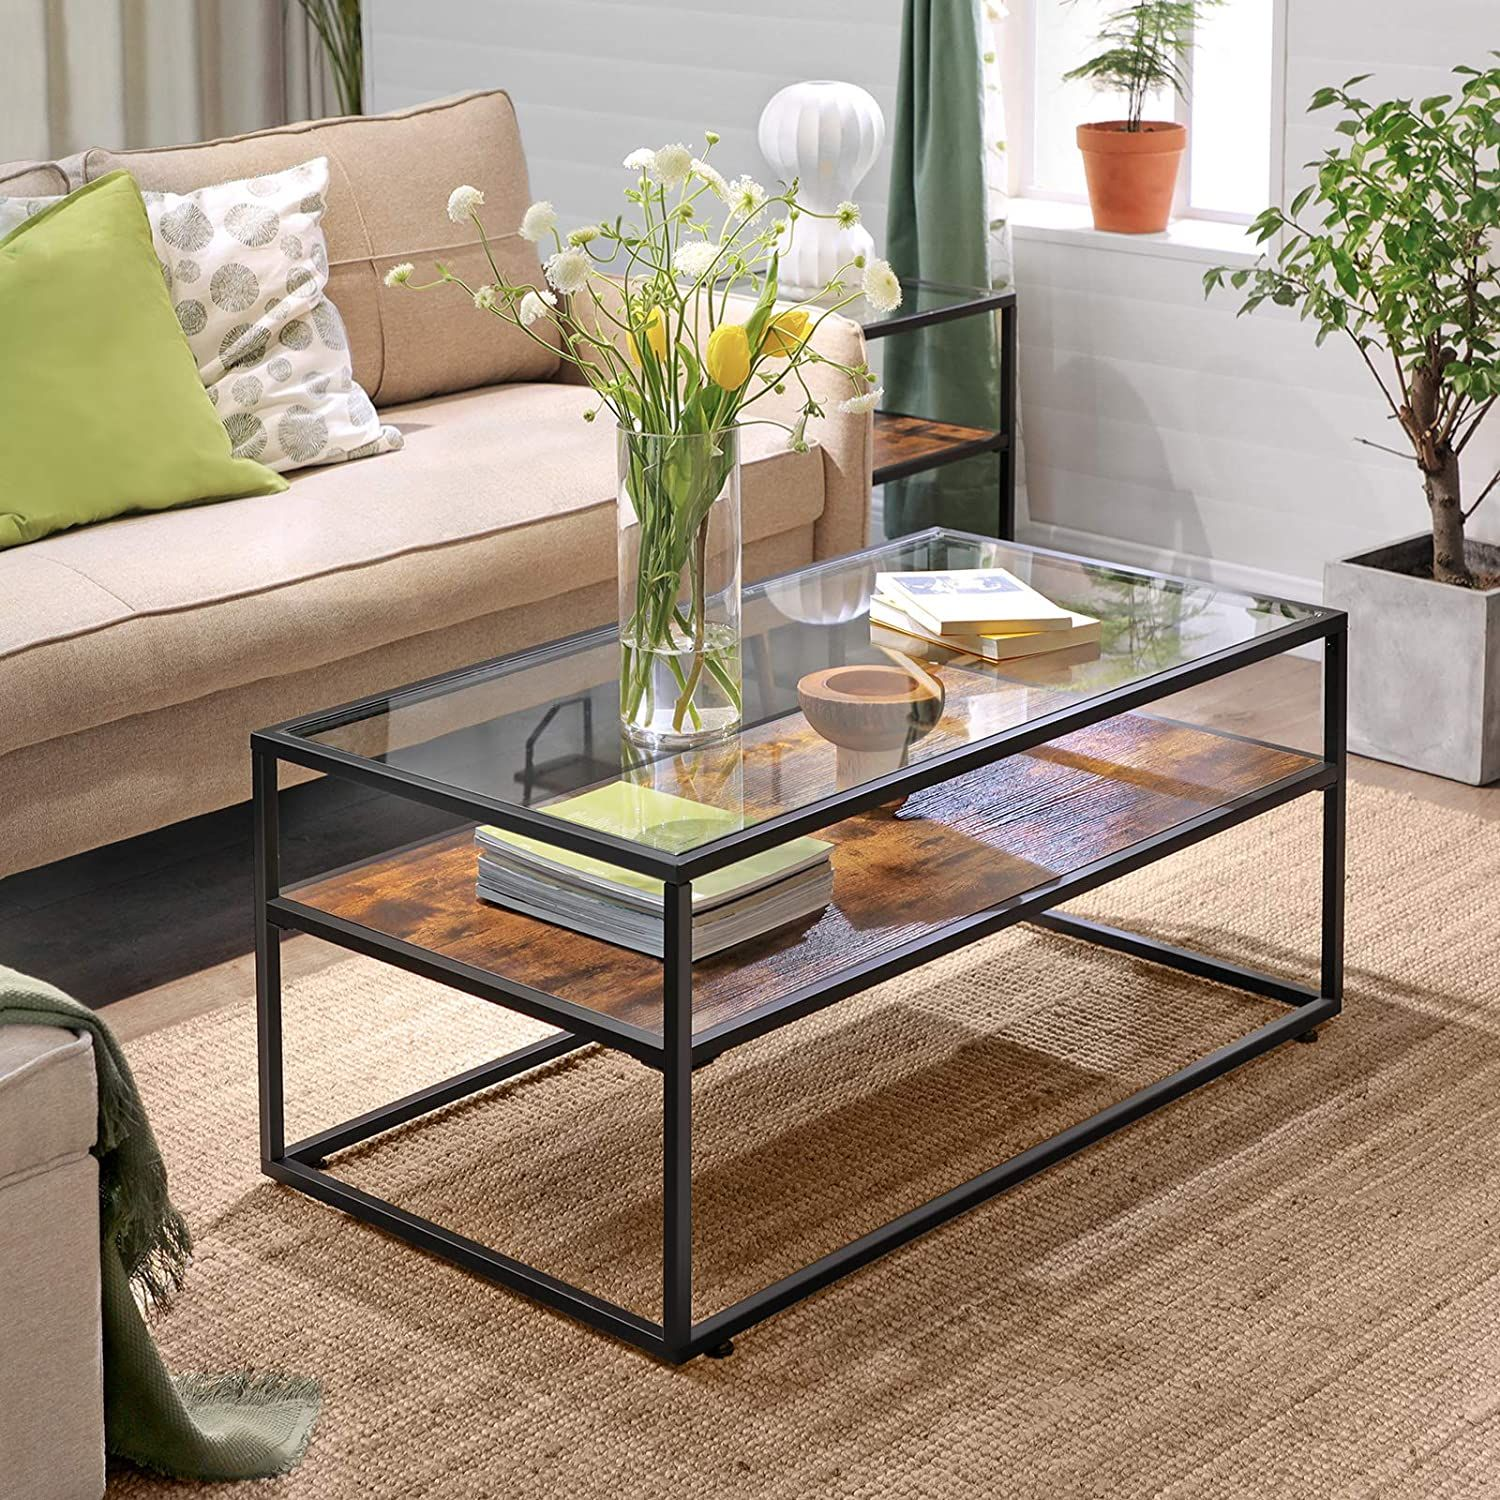 Ryan Glass Top Console Table In 2021 Coffee Table Coffee Table Wood Coffee Table With Storage [ 1500 x 1500 Pixel ]